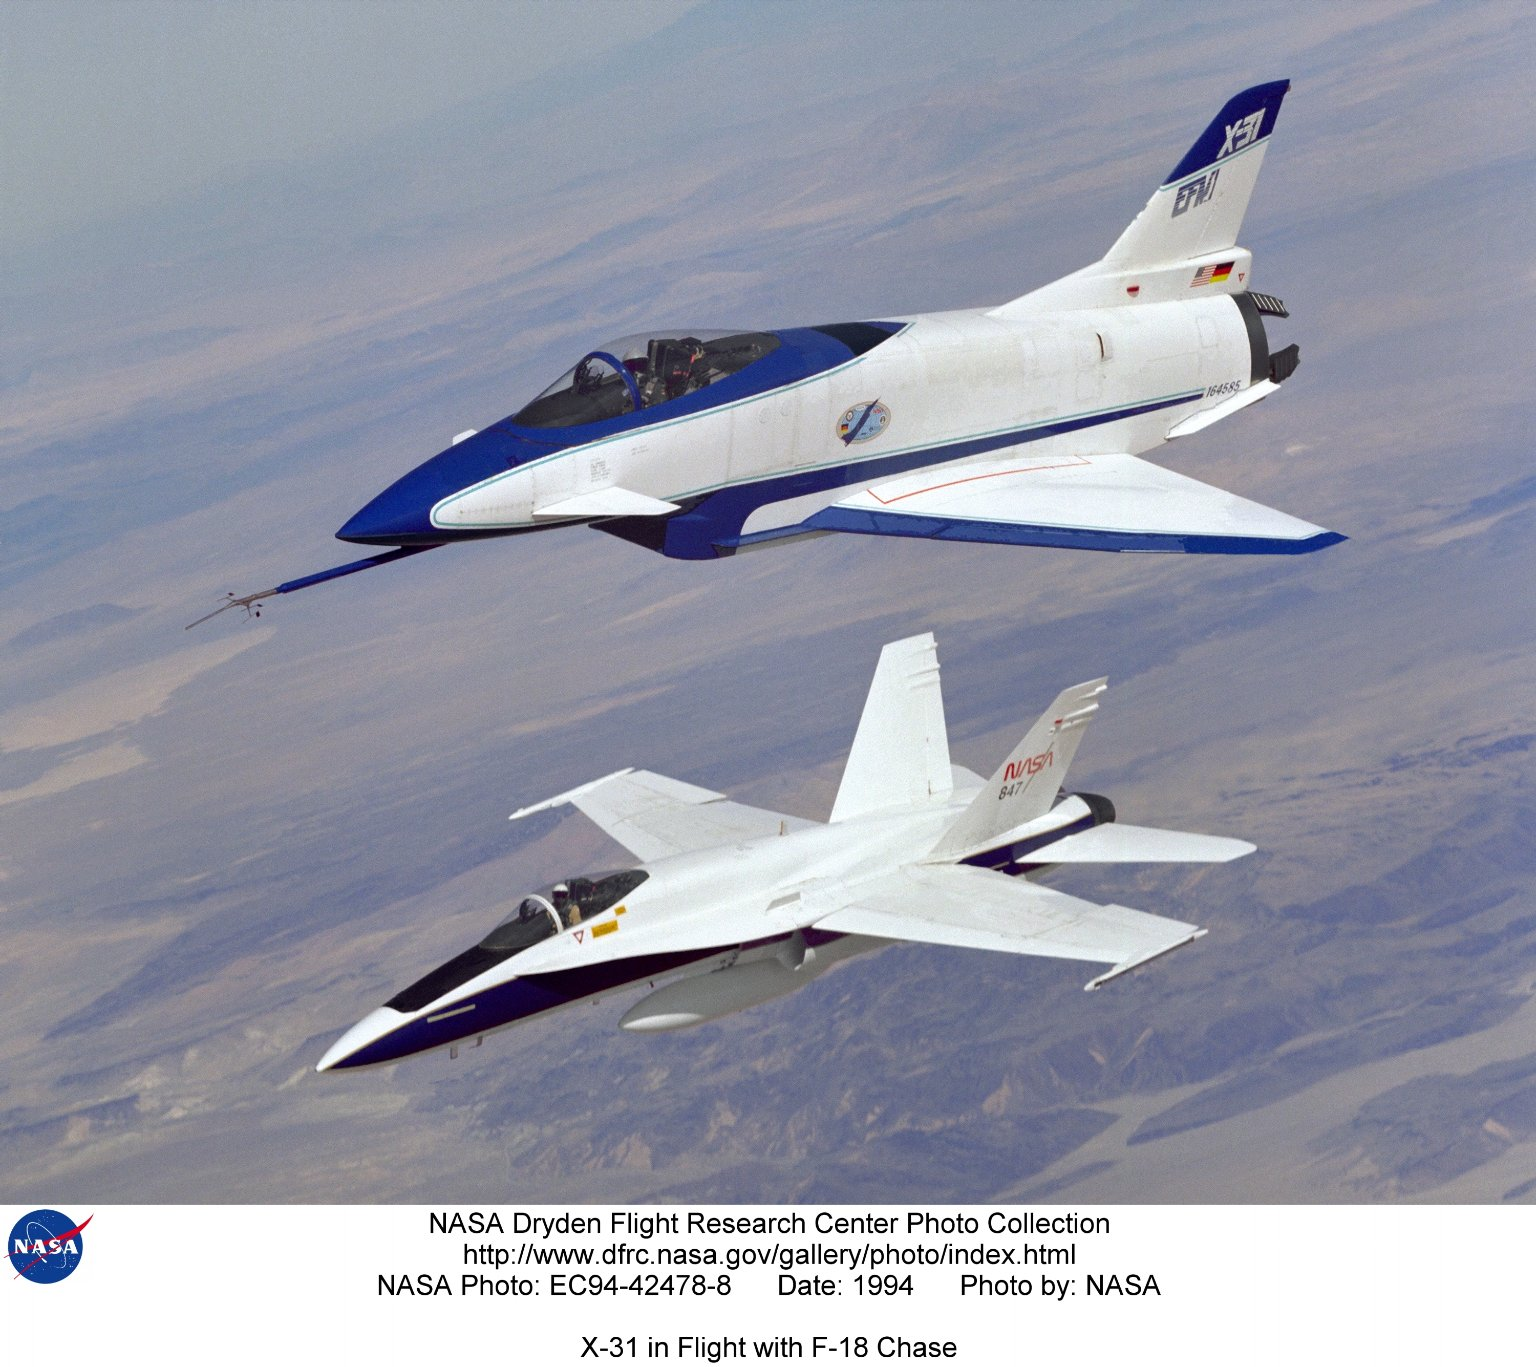 X-31 in Flight with F-18 Chase